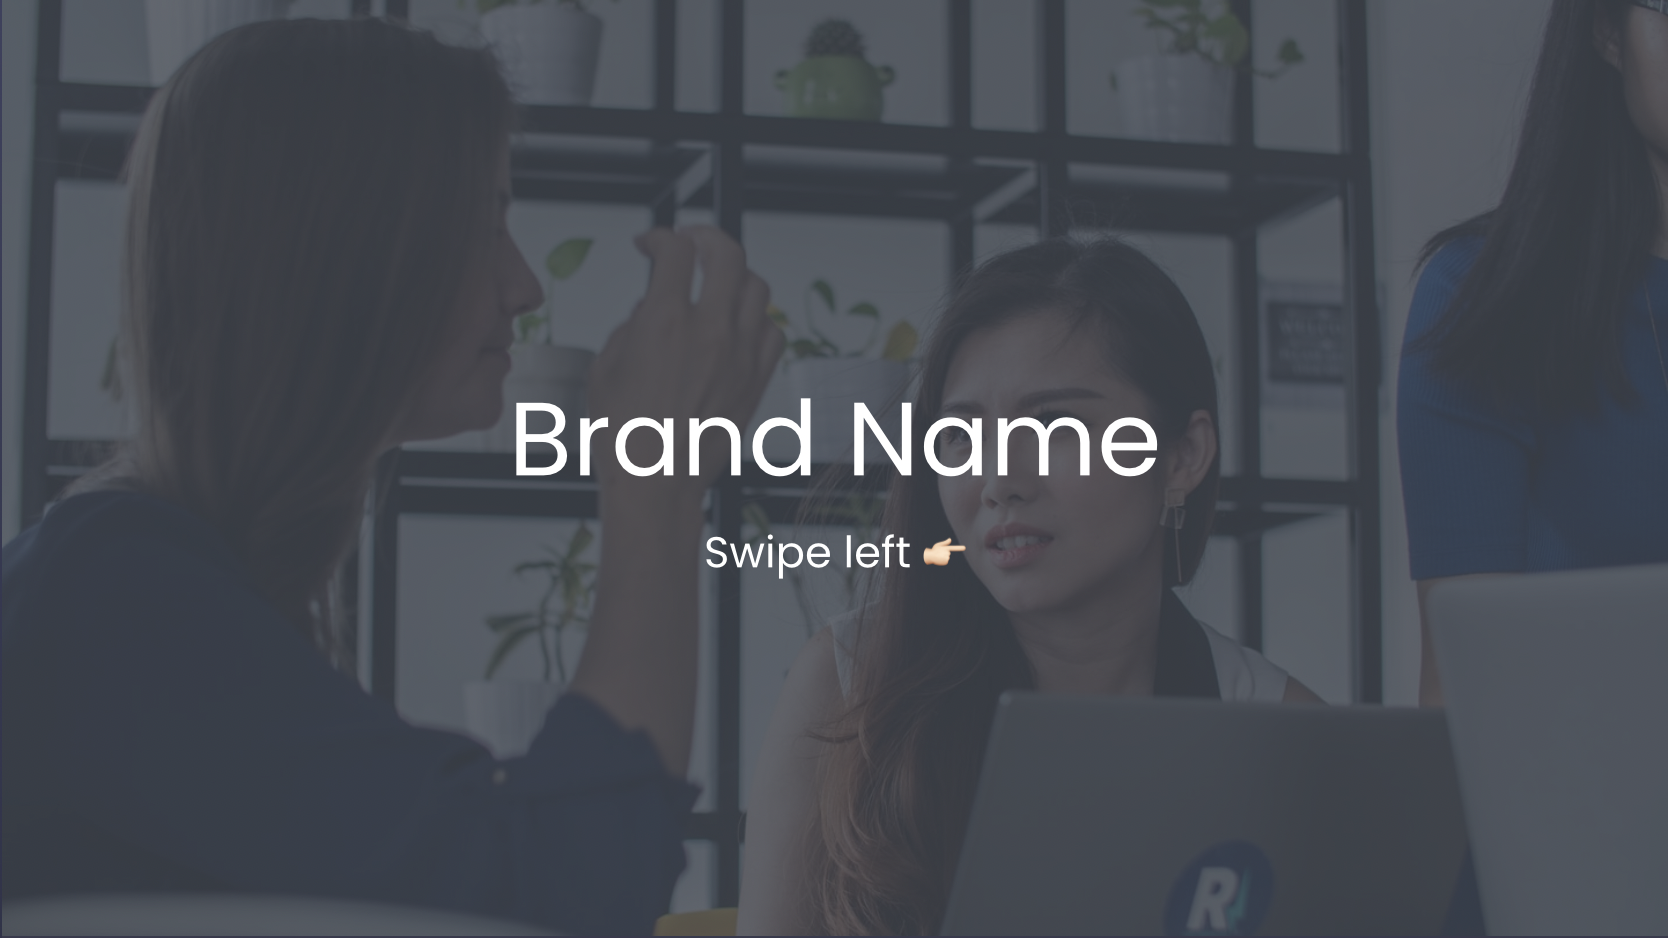 Are you a small business owner just starting out your business? Try this landing page with a user-friendly creation platform and no-code&no-design experience.